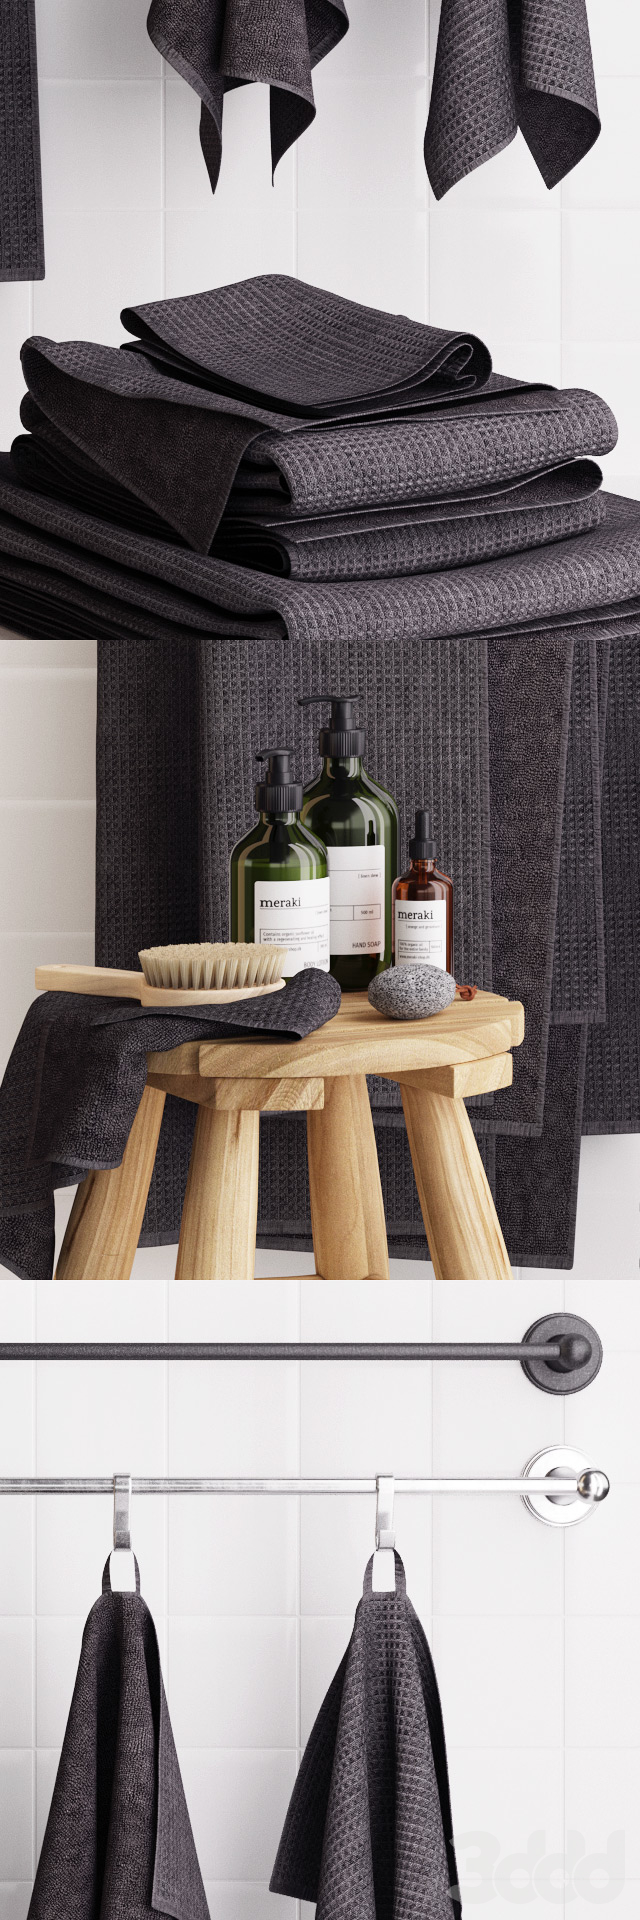 Zara Rustic Bathroom Set